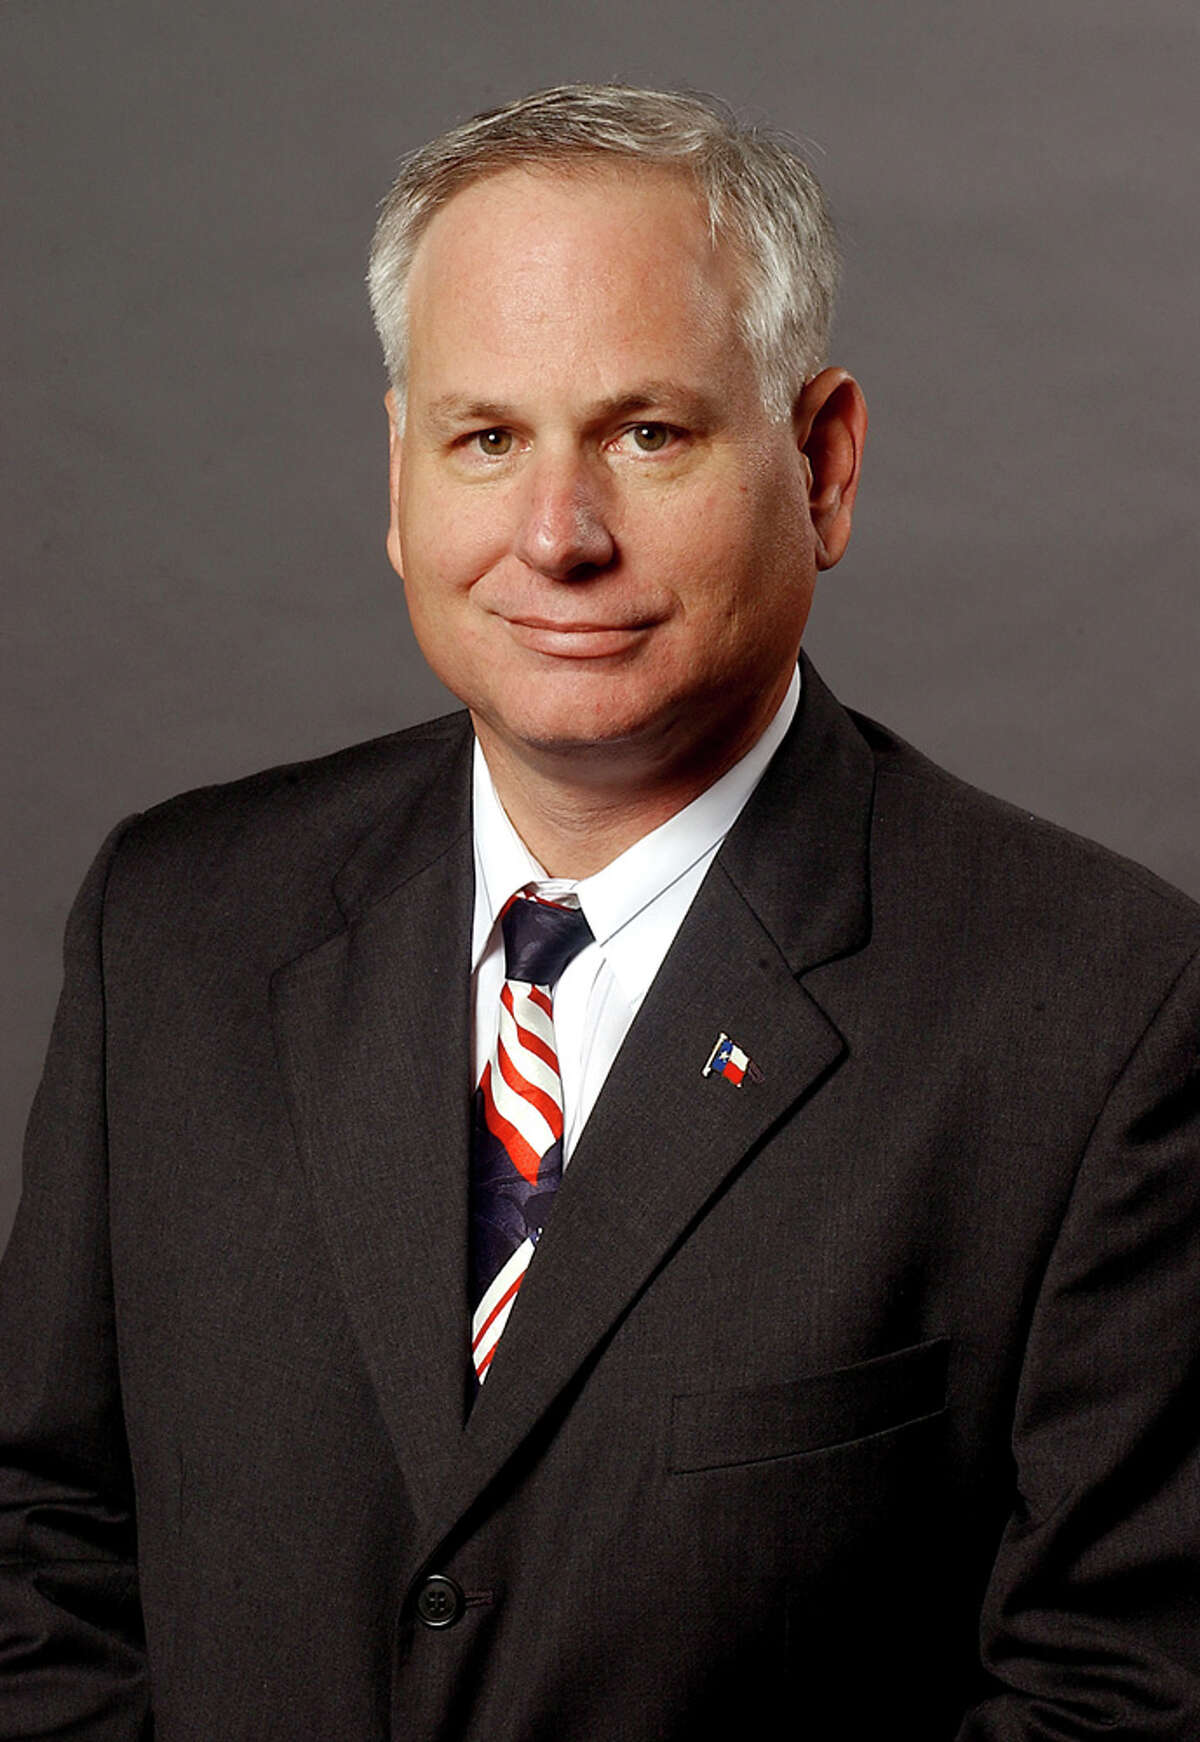 Rep. Allan Ritter, R-Nederland, filed two bills that would transfer money from the state's rainy day fund into a new account to help pay for water projects.